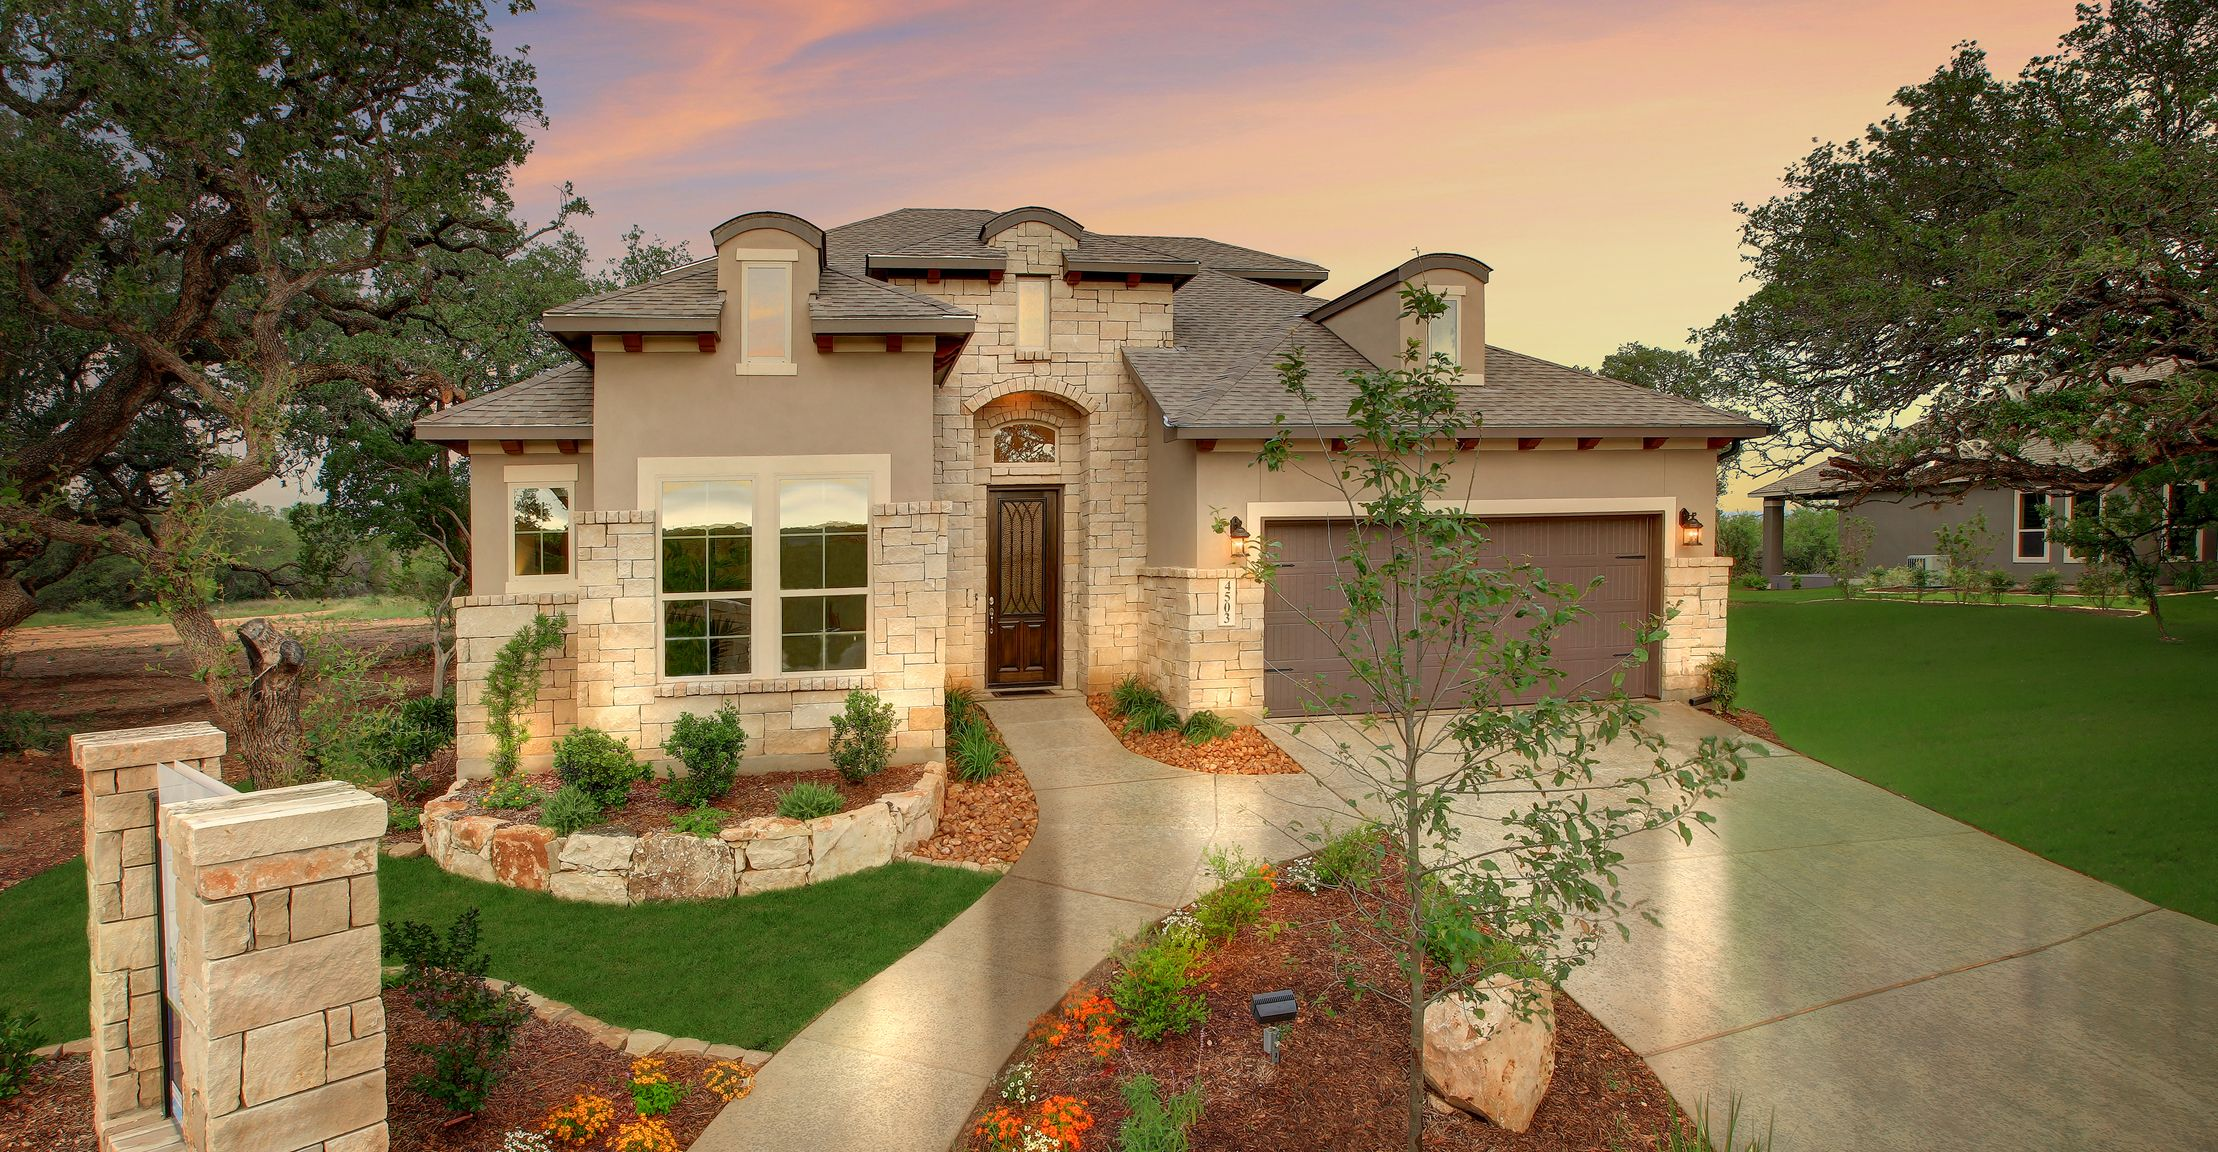 new imagine homes model home in amorosa in cibolo canyons 4503 amorosa way san - Garden Homes San Antonio